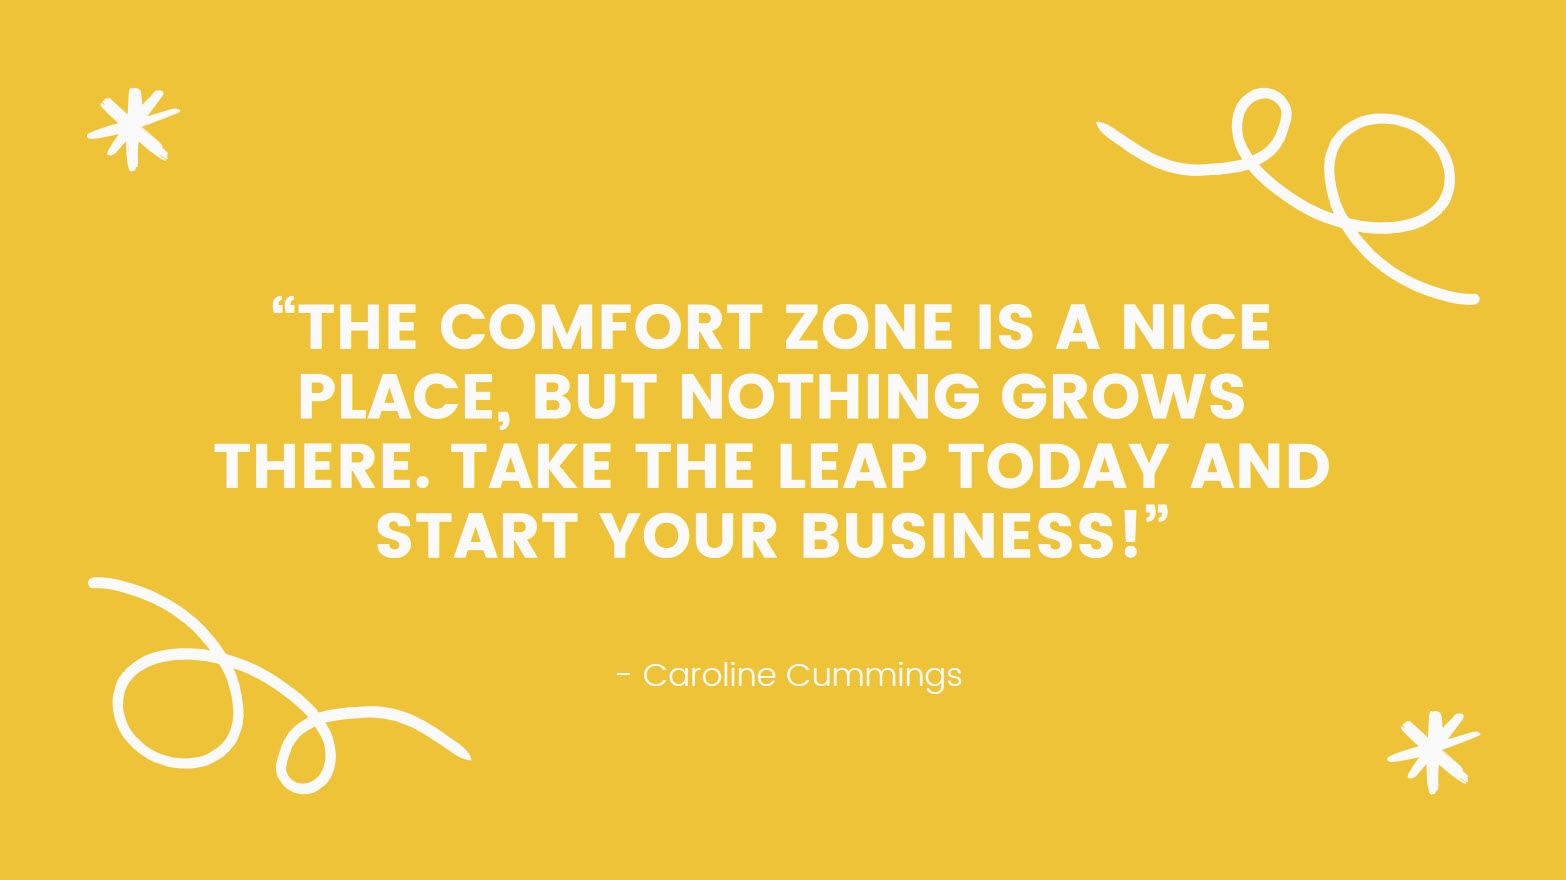 """Quote: """"The comfort zone is a nice place, but nothing grows there. Take the leap today and start your business!"""" - Caroline Cummings"""